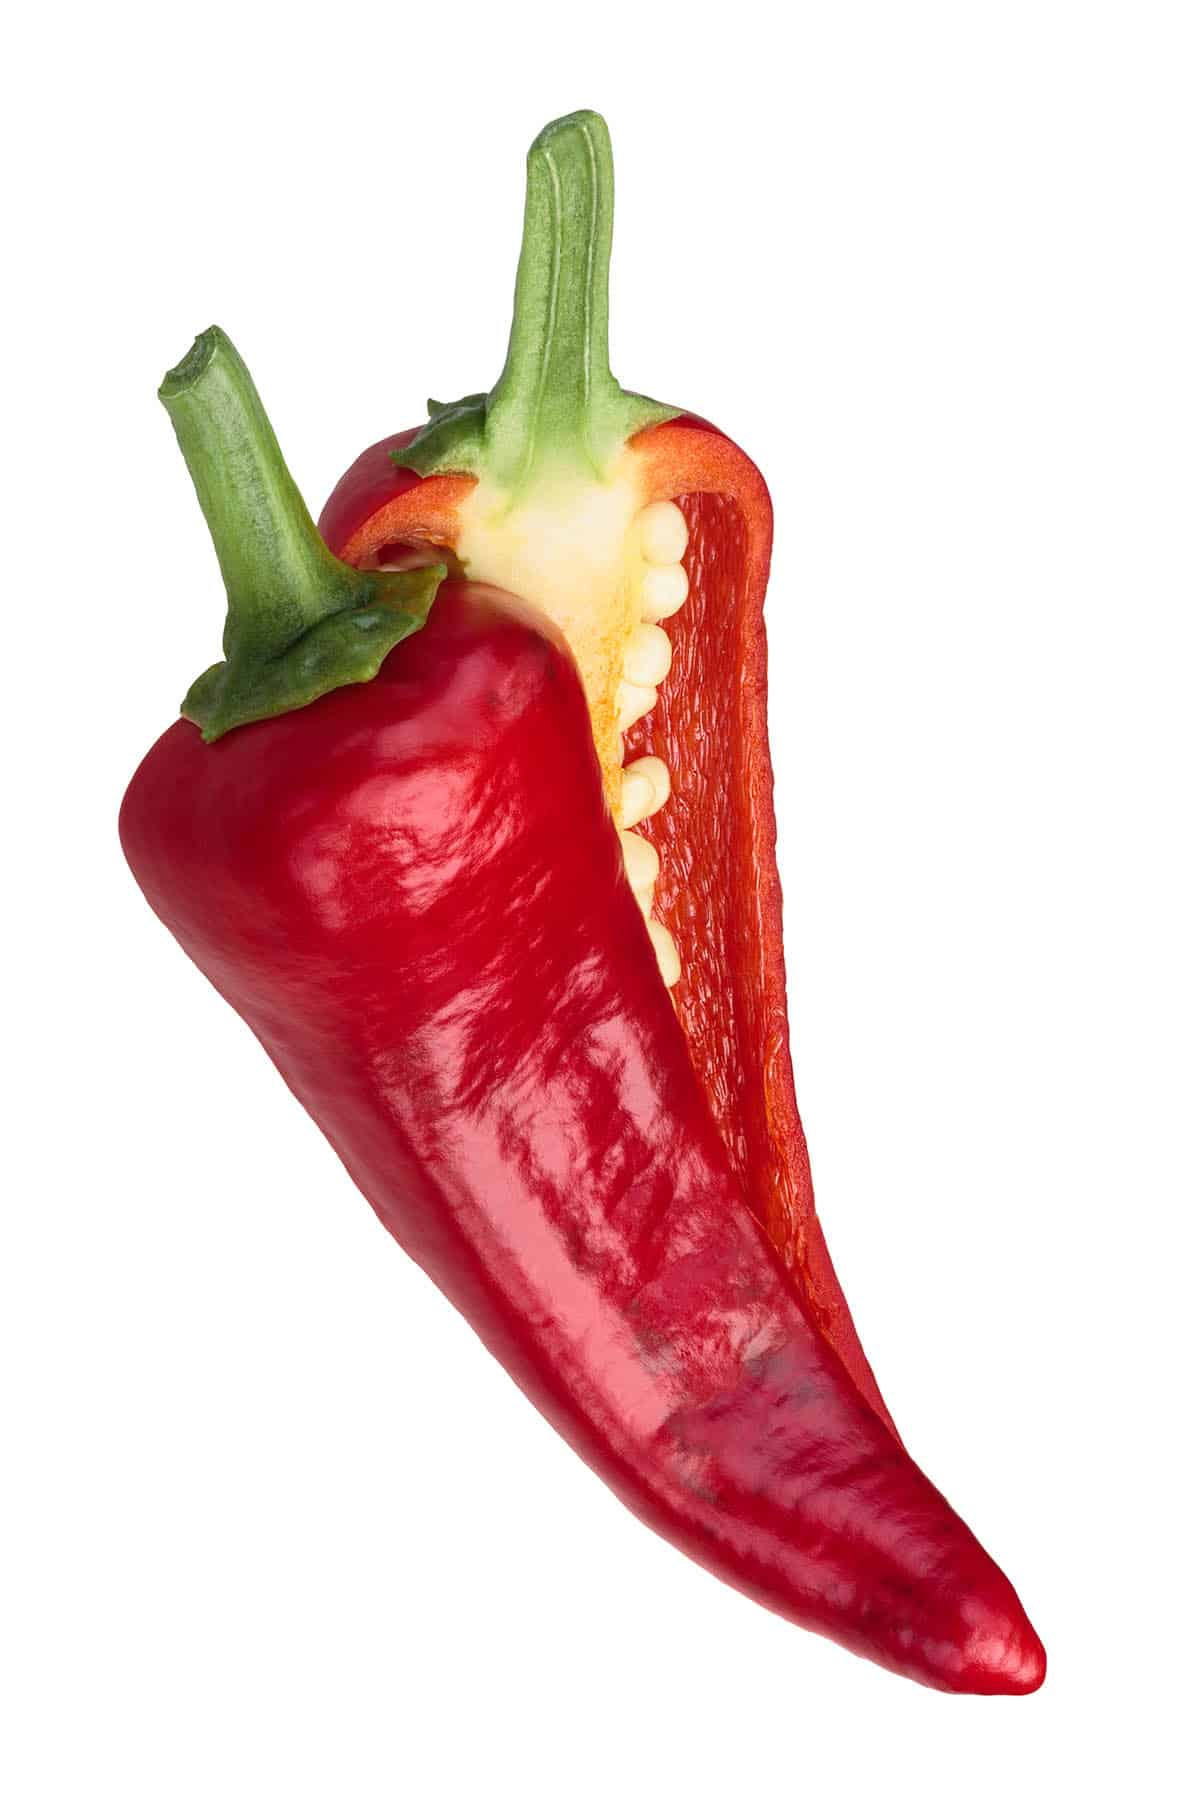 Chimayo Chili Peppers